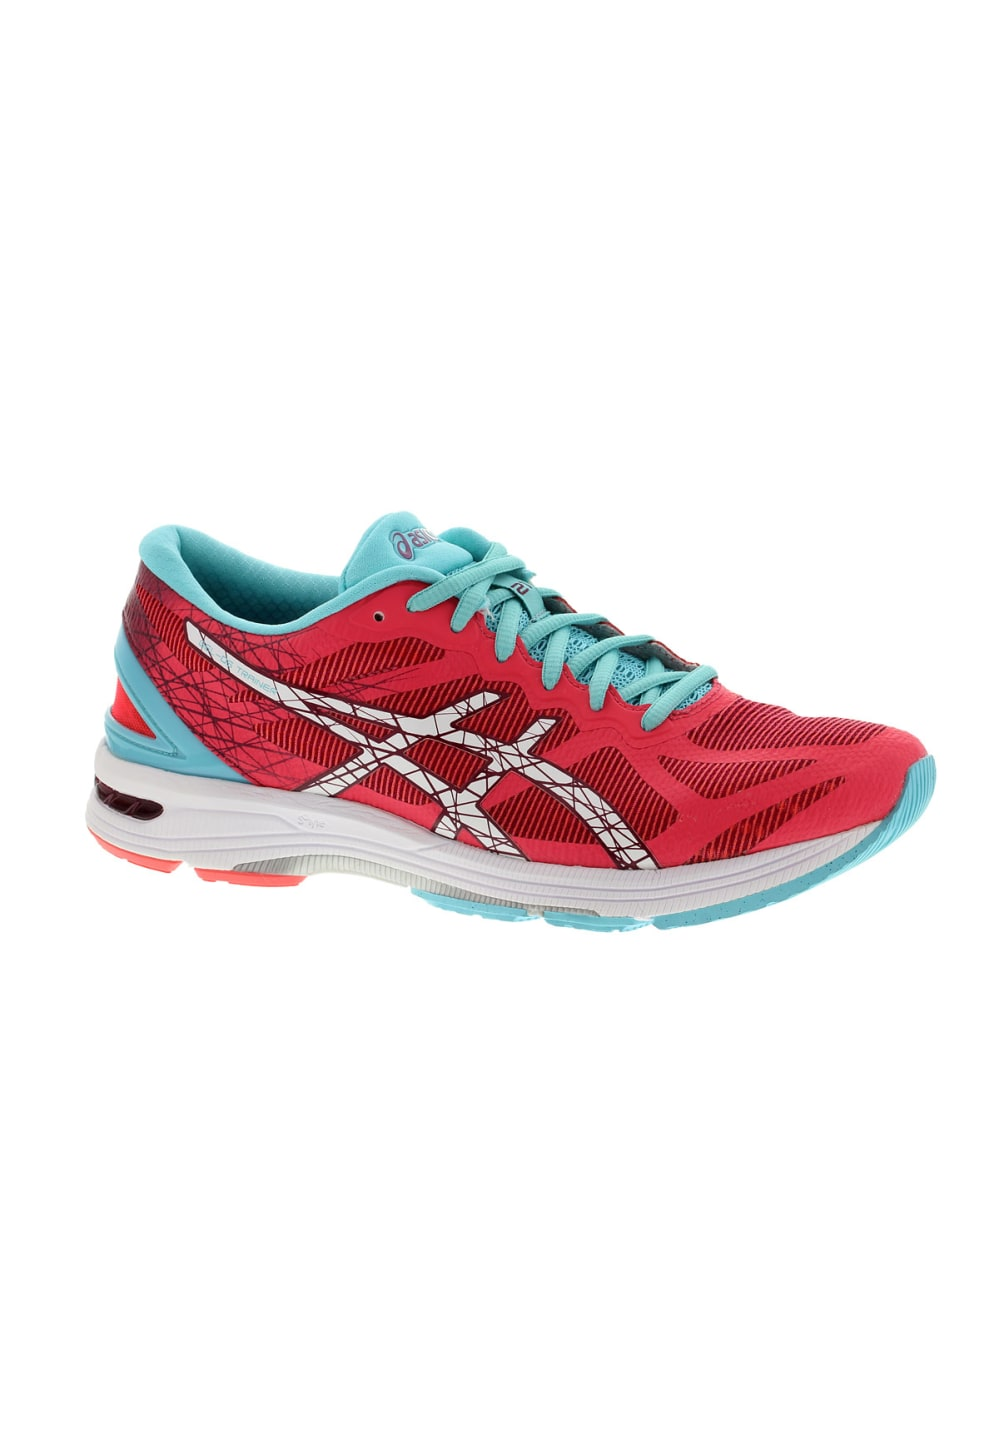 online store f2990 f67a4 ASICS GEL-DS Trainer 21 - Running shoes for Women - Red